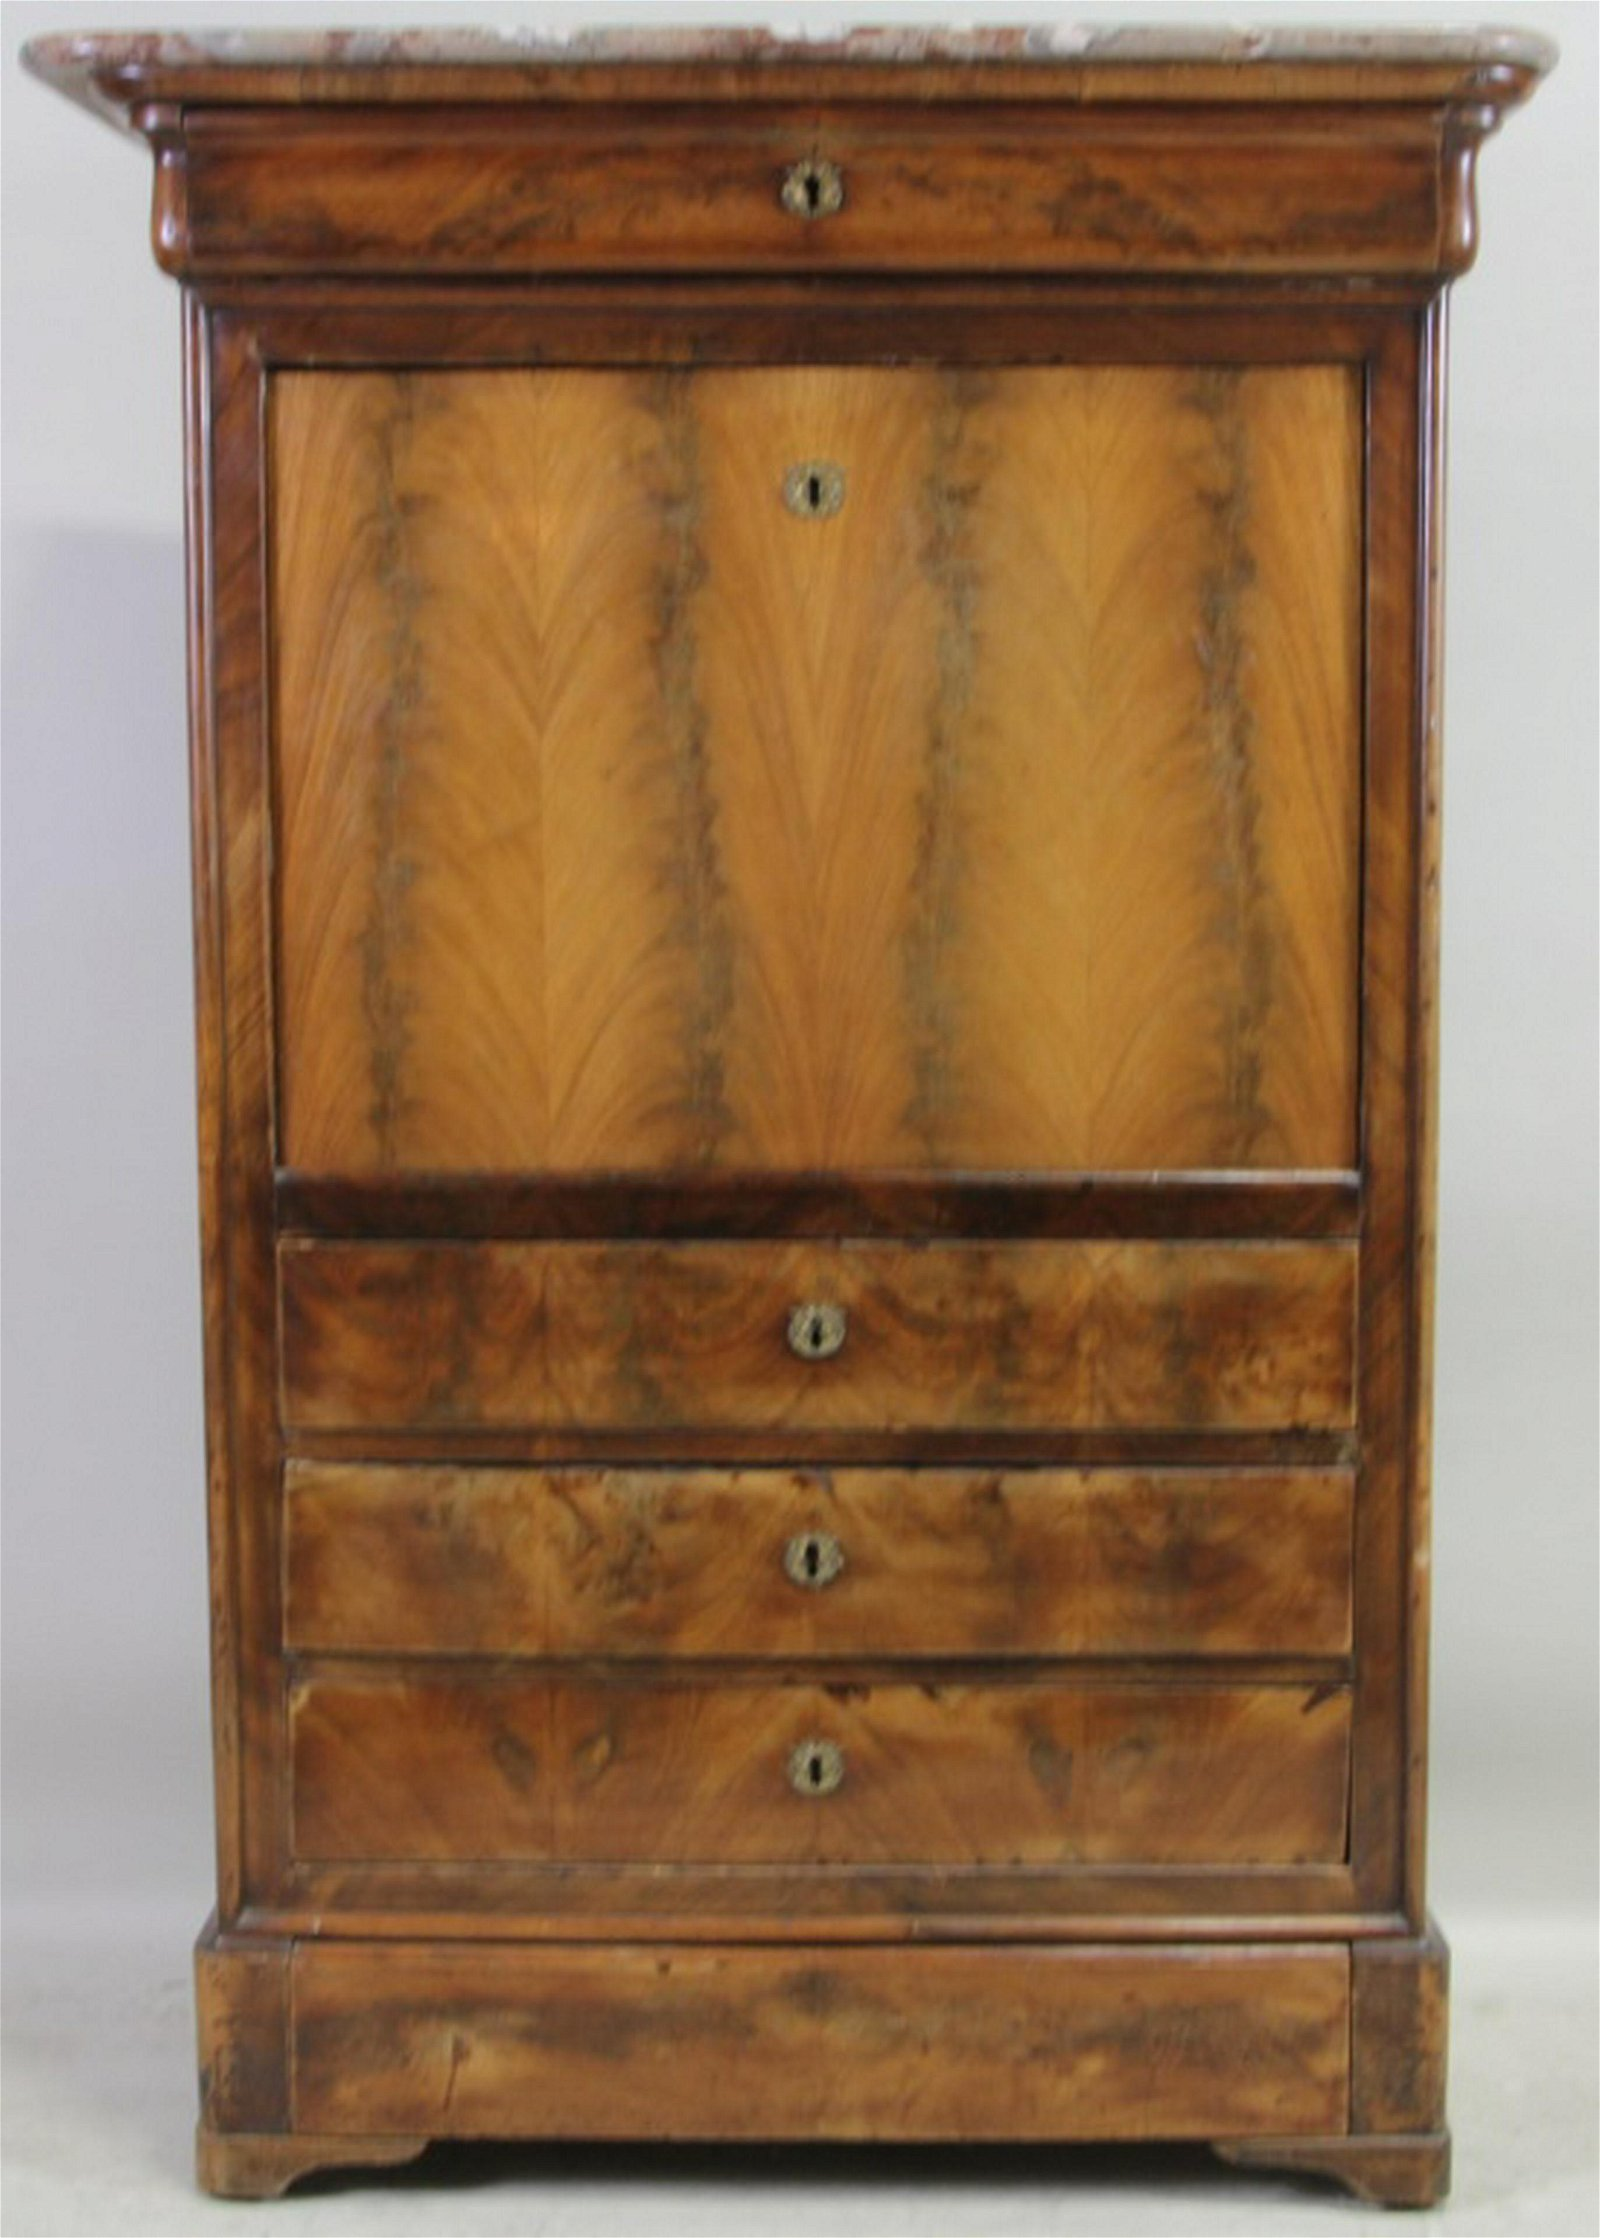 c.1870'S LOUIS PHILIPPE SECRETARY WITH MARBLE TOP